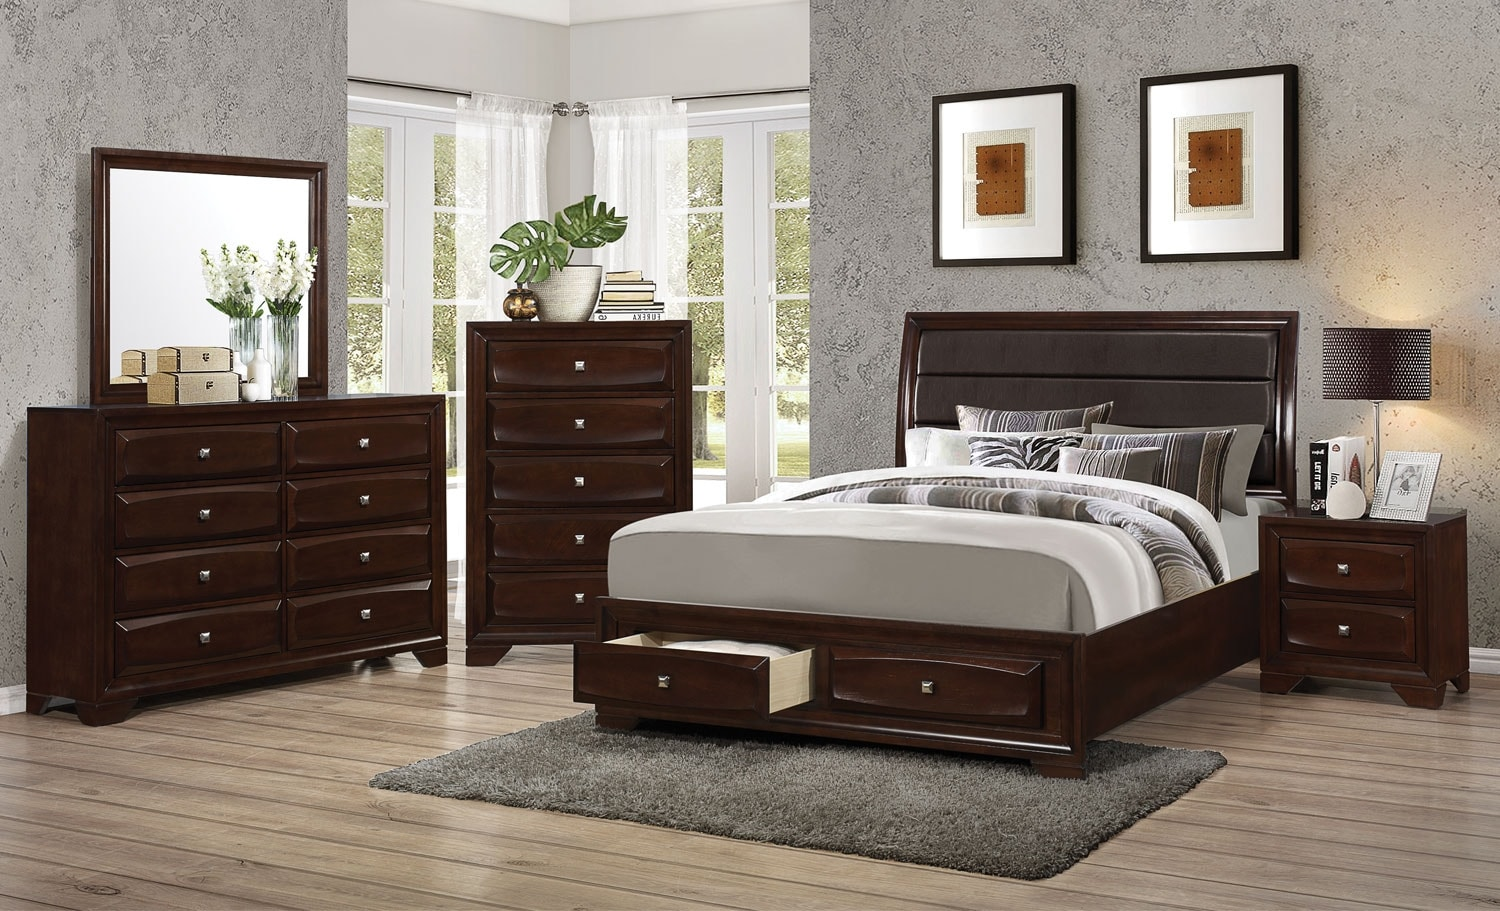 Jaxon 5 Piece King Storage Bedroom Package The Brick